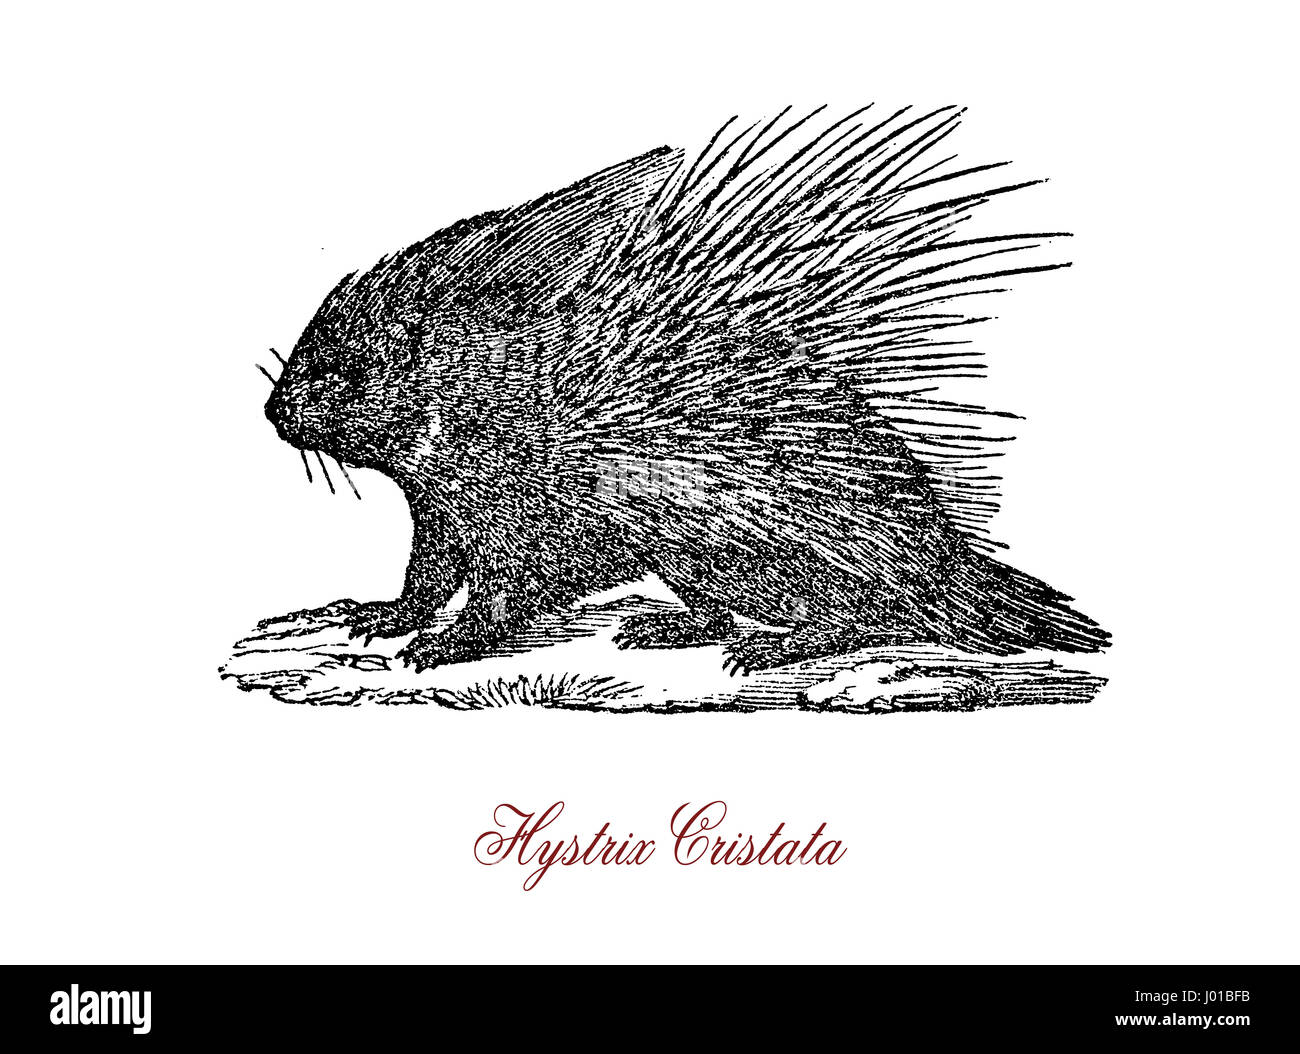 The crested porcupine (Hystrix cristata) is a species of rodent in the family Hystricidae found in Italy, North - Stock Image